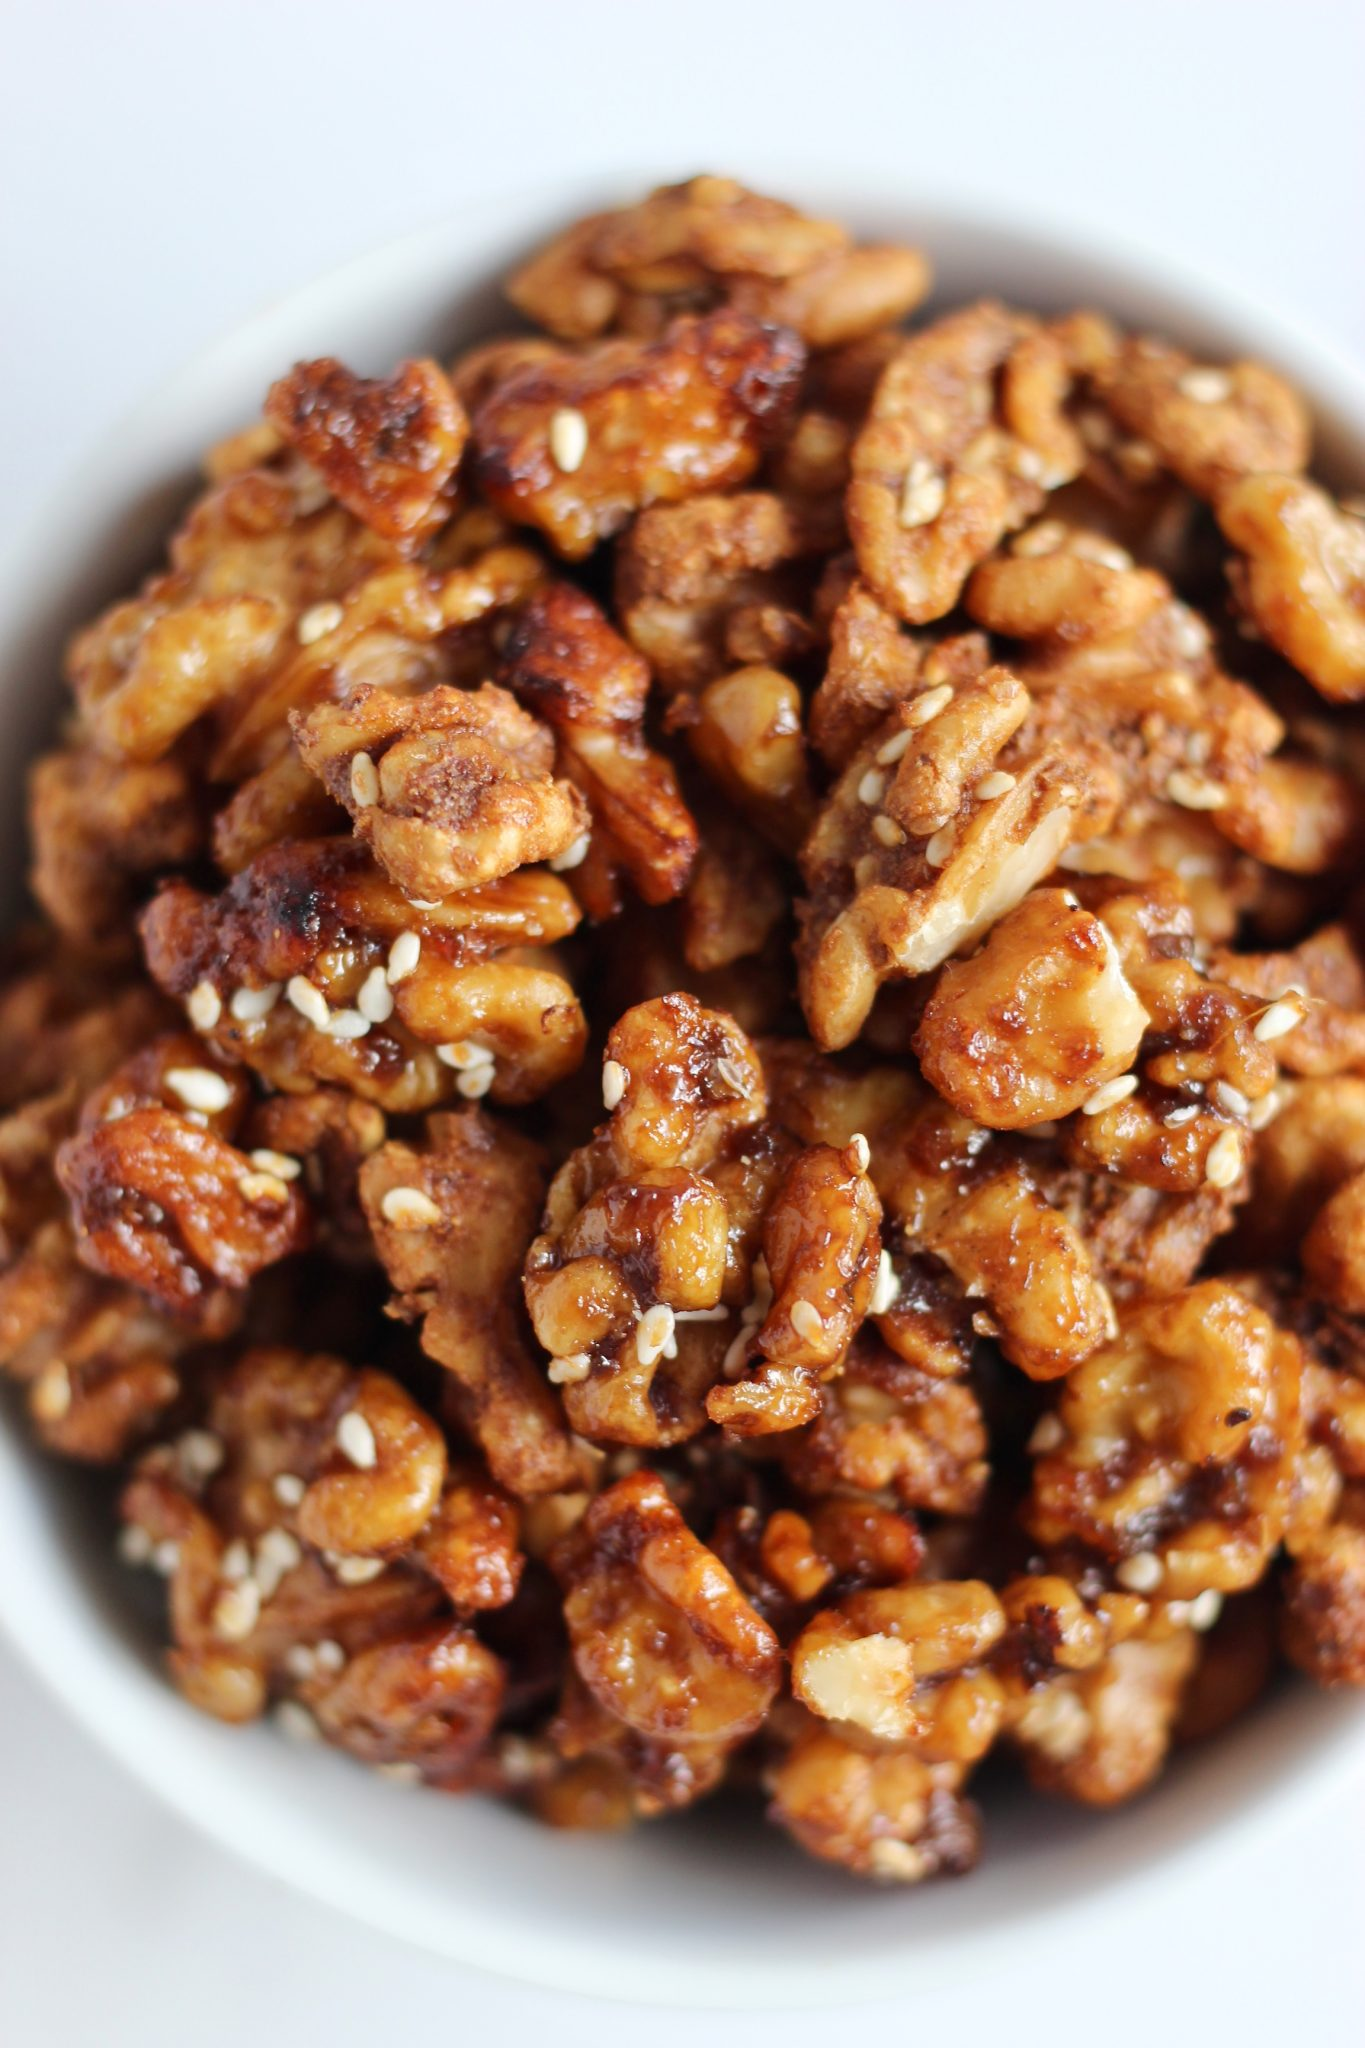 These crunchy soy glazed walnuts are the perfect savory bite to snack on at home. They are seriously so easy to make and call for just a few simple pantry ingredients and spices. Recipe includes vegan and gluten-free friendly options. #PantryRecipe #Sponsored #WalnutsSweetOrSavory @CaWalnuts